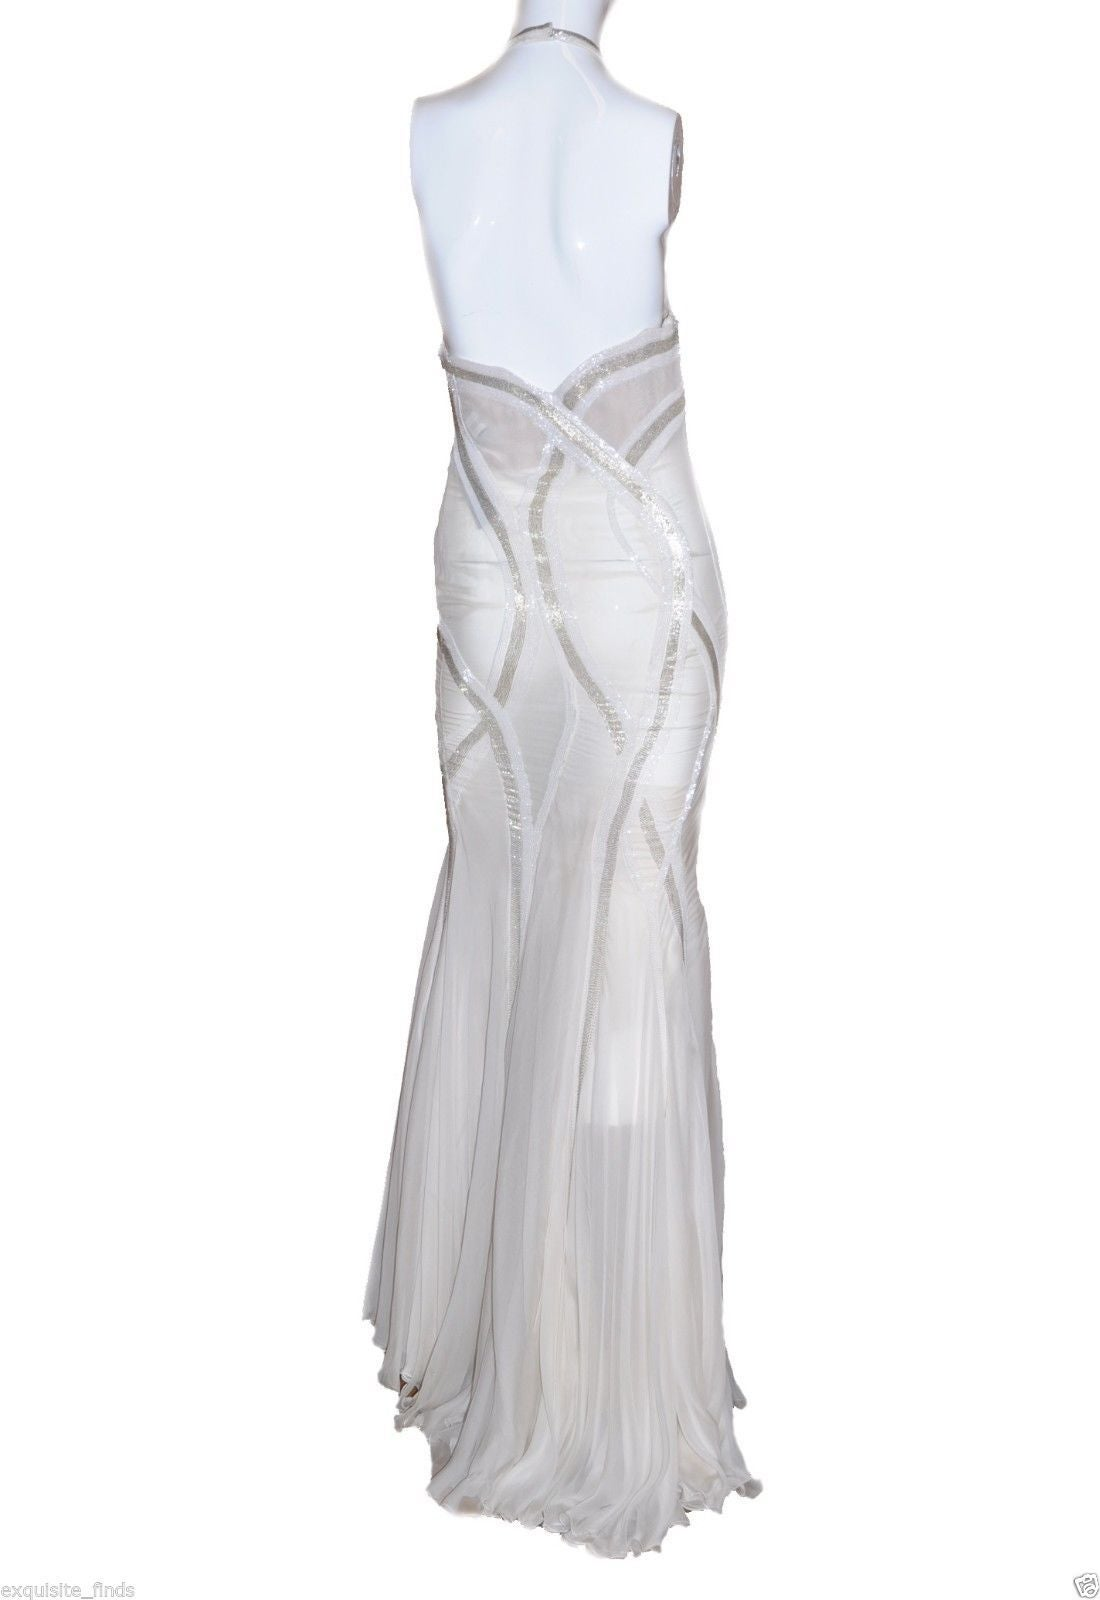 New VERSACE EMBELLISHED MERMAID CHIFFON GOWN 3